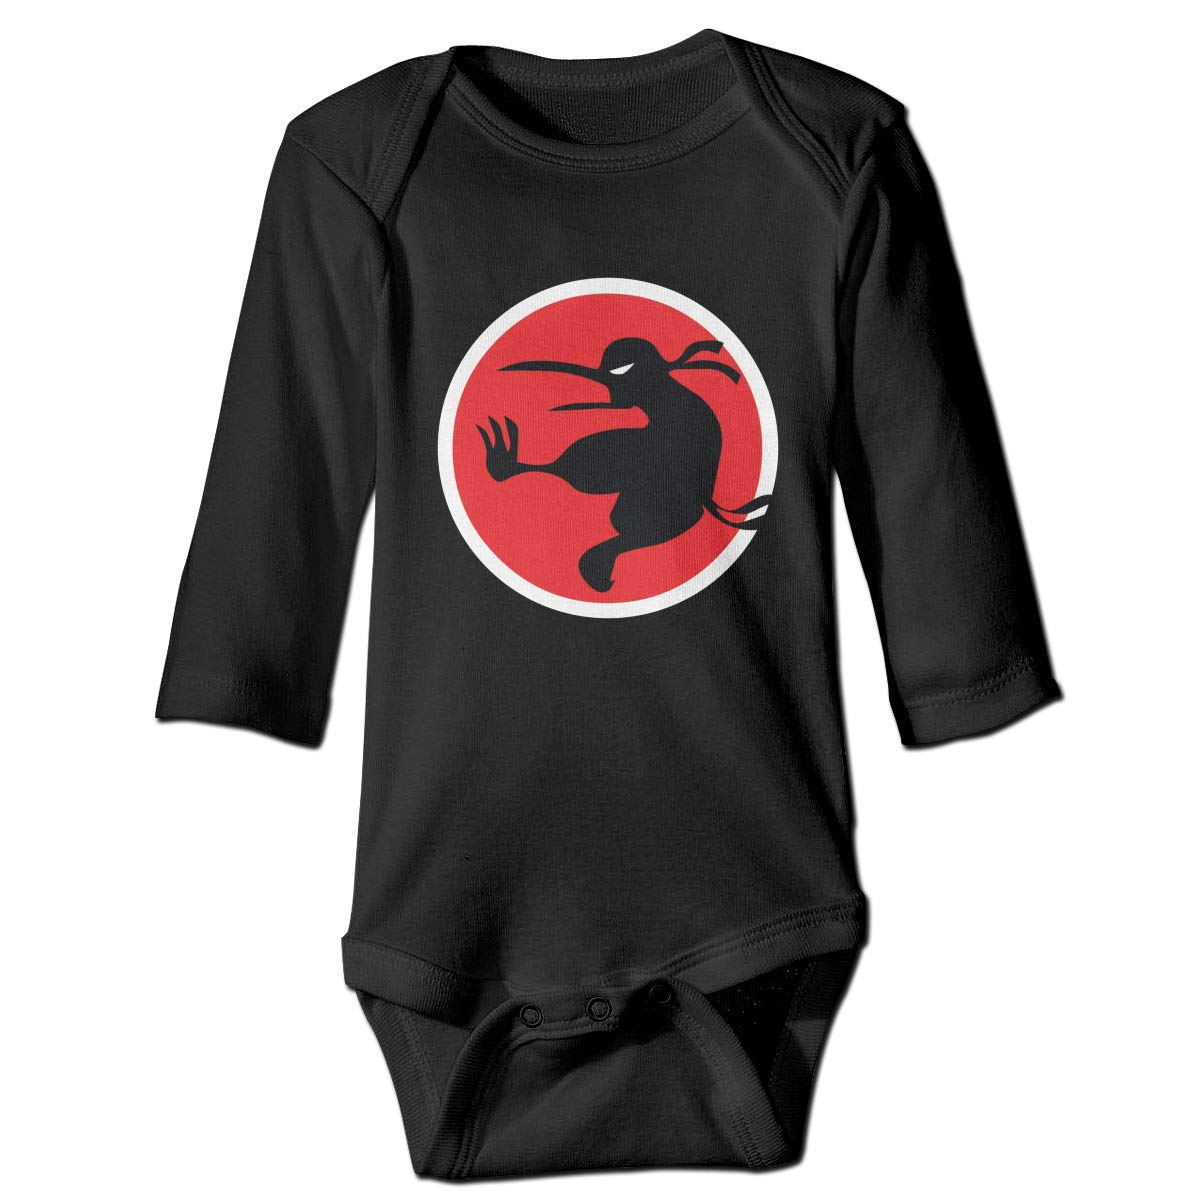 Amazon.com: Ninja Kiwi Baby Boys Long Sleeve Cotton Bodysuit ...